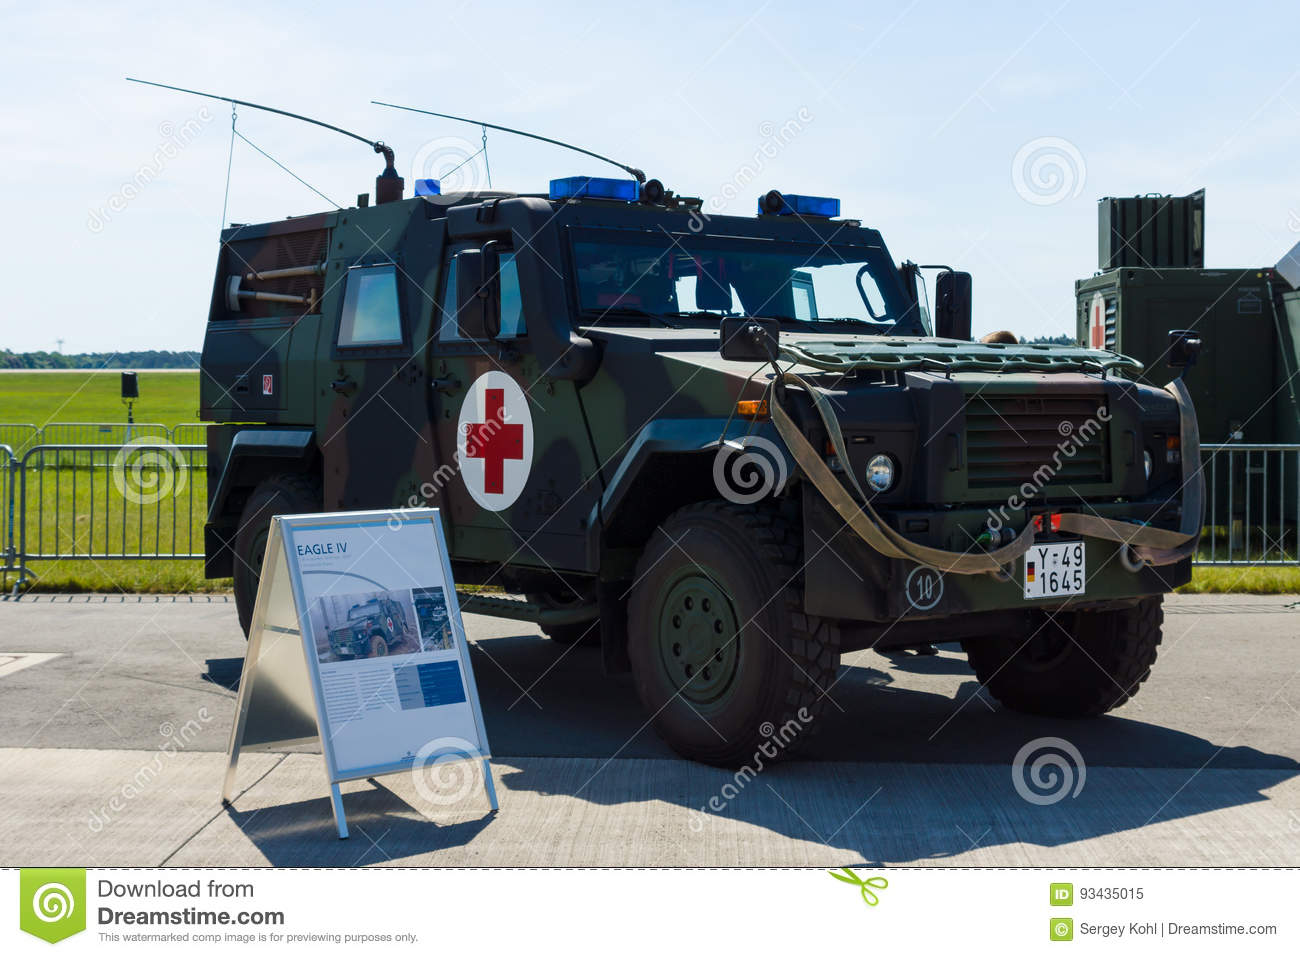 Wheeled Armored Vehicles Mowag Eagle Iv Ambulance Versions Editorial Image Image Of Berlin Mowag 93435015